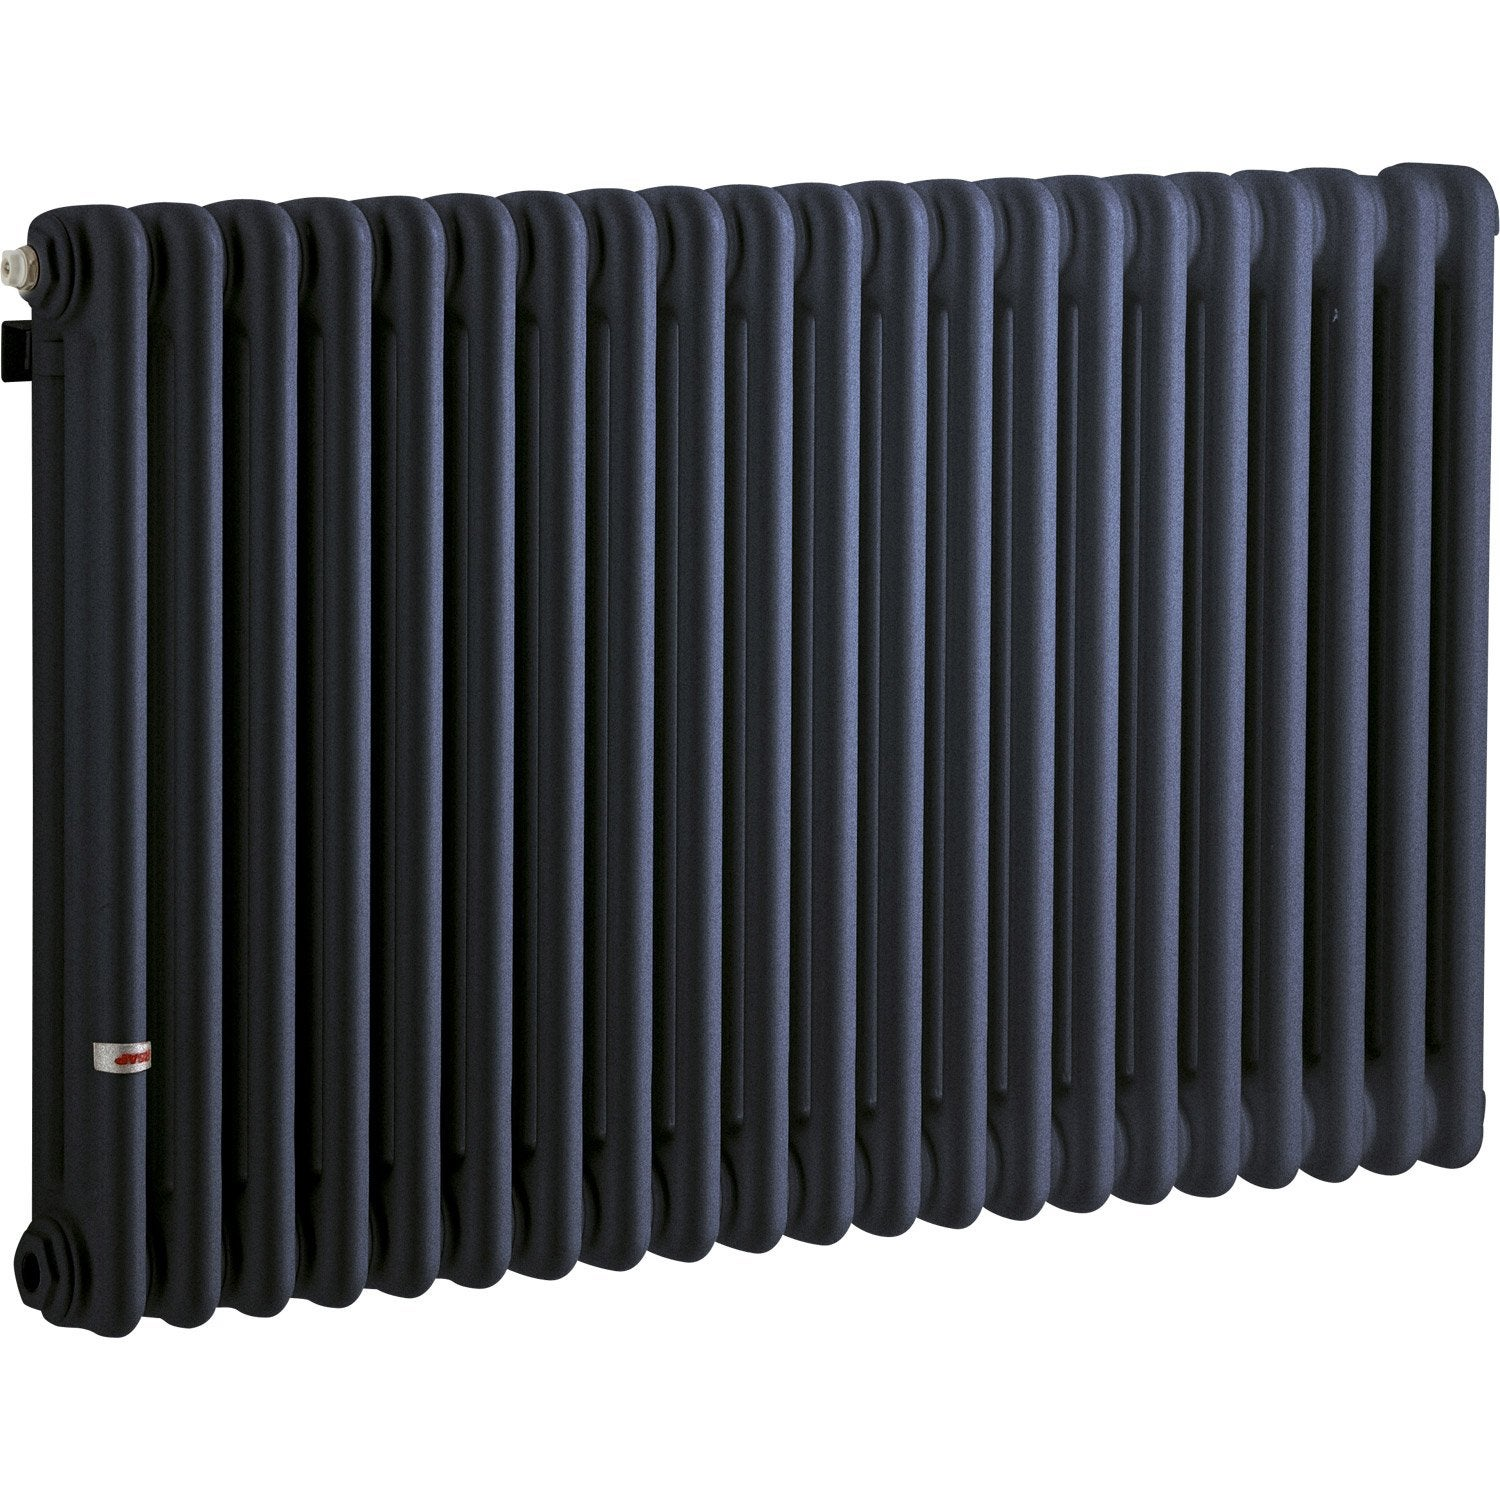 radiateur plinthe chauffage central radiateur vuelta. Black Bedroom Furniture Sets. Home Design Ideas